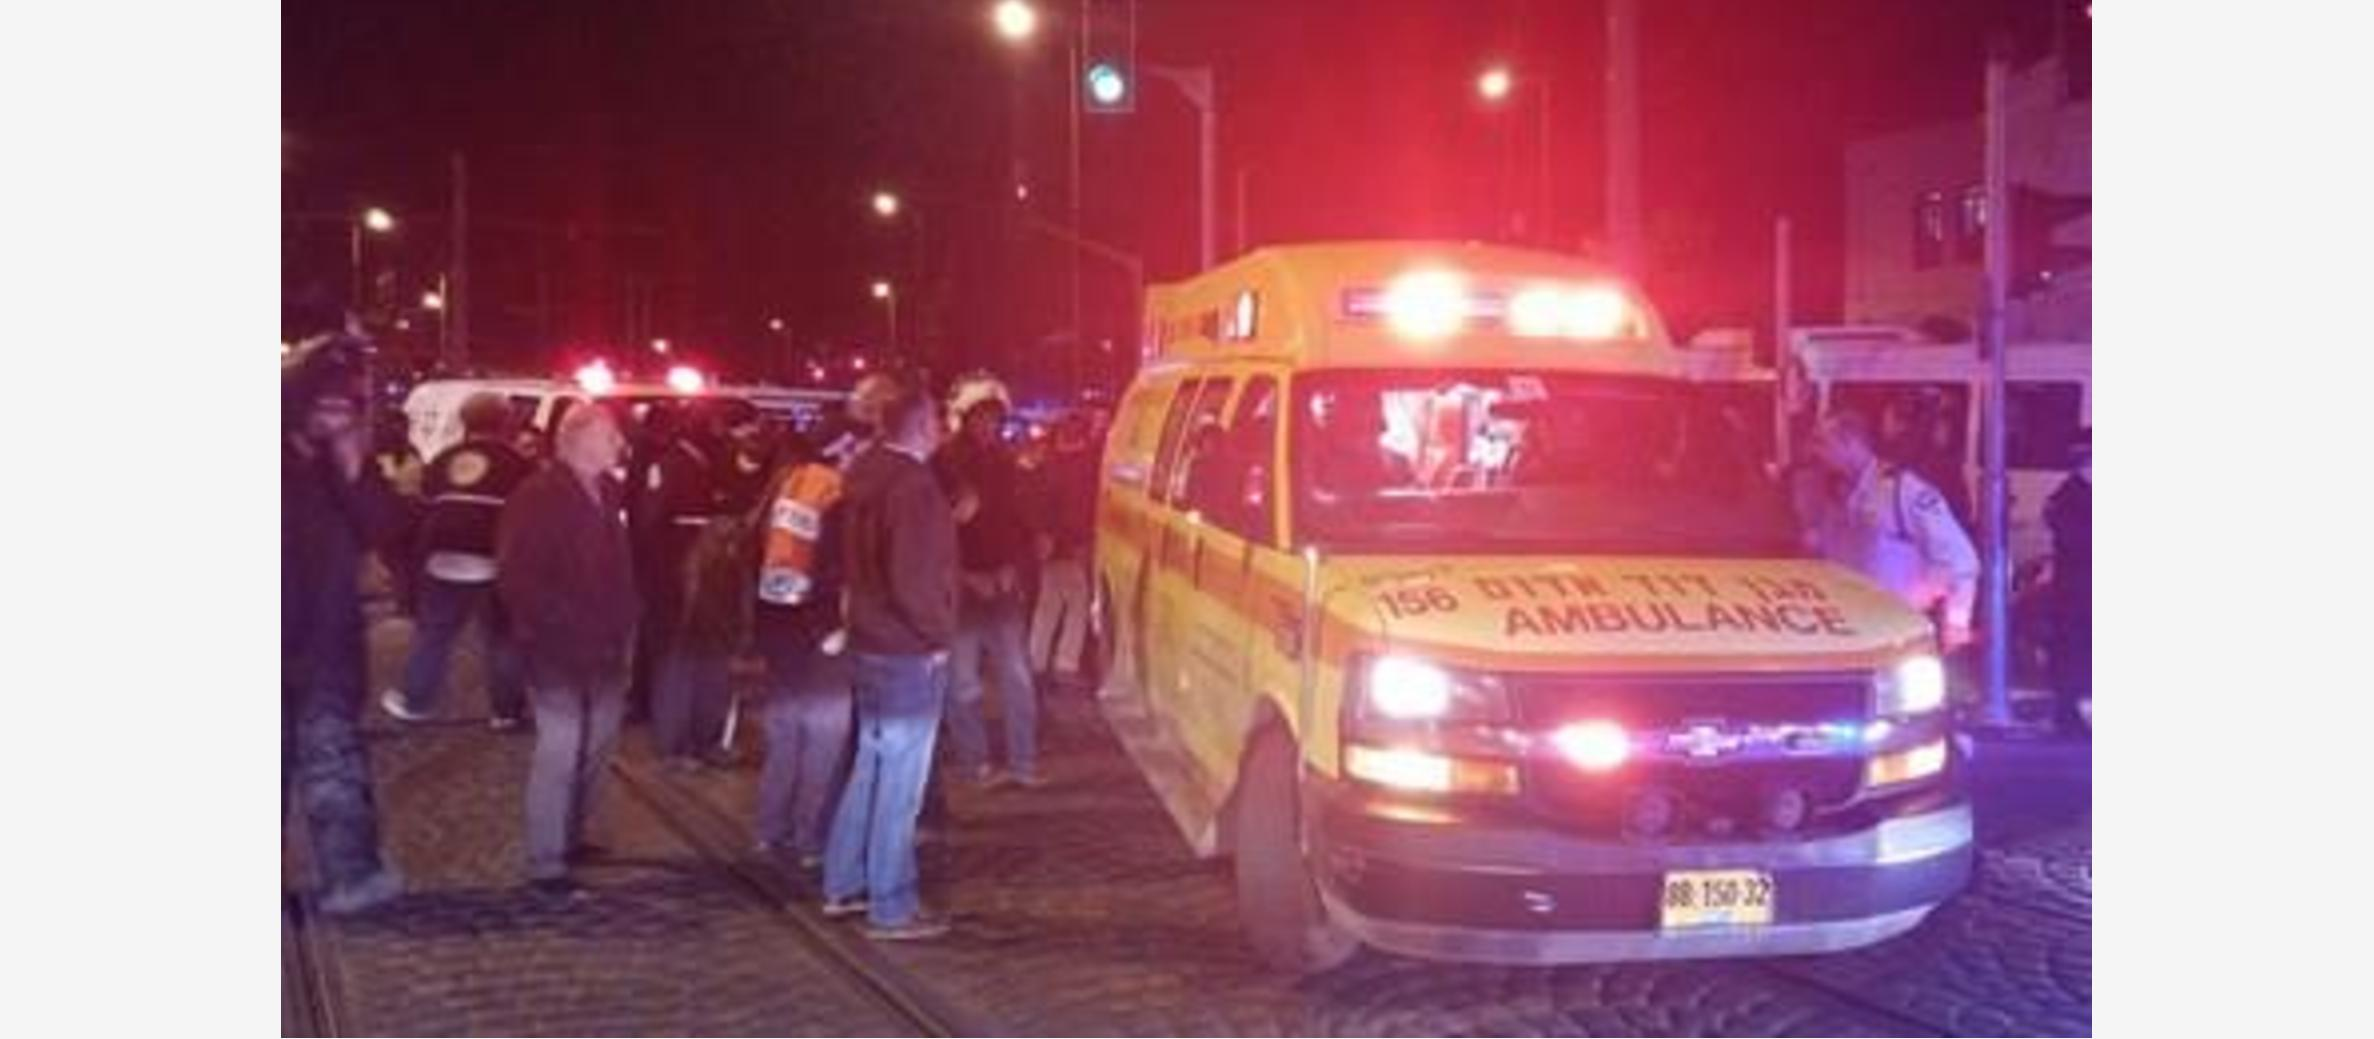 Shots at car ends in a miracle; Israeli soldiers attacked in Hebron and Jerusalem